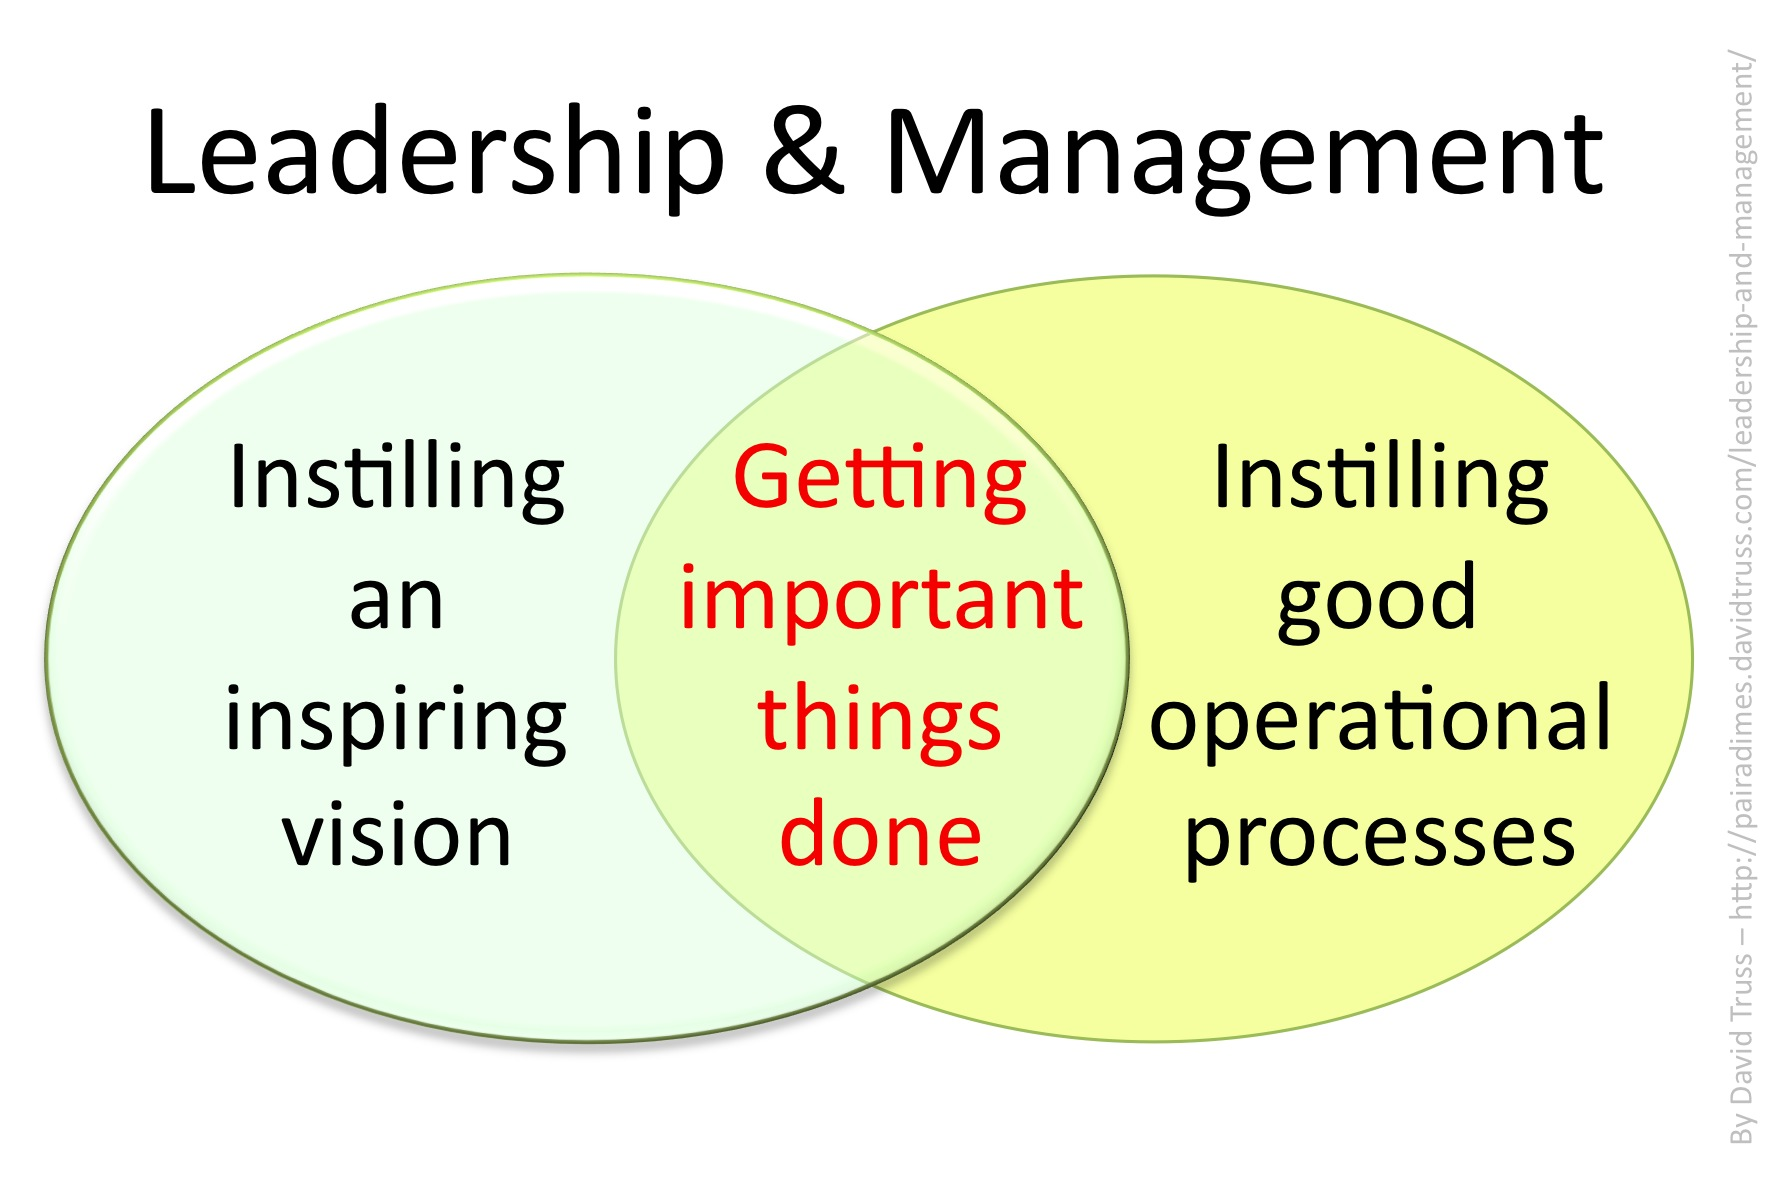 management and leader Are all managers leaders are all leaders managers this lesson presents arguments that place a manager and a leader into two separate categories.